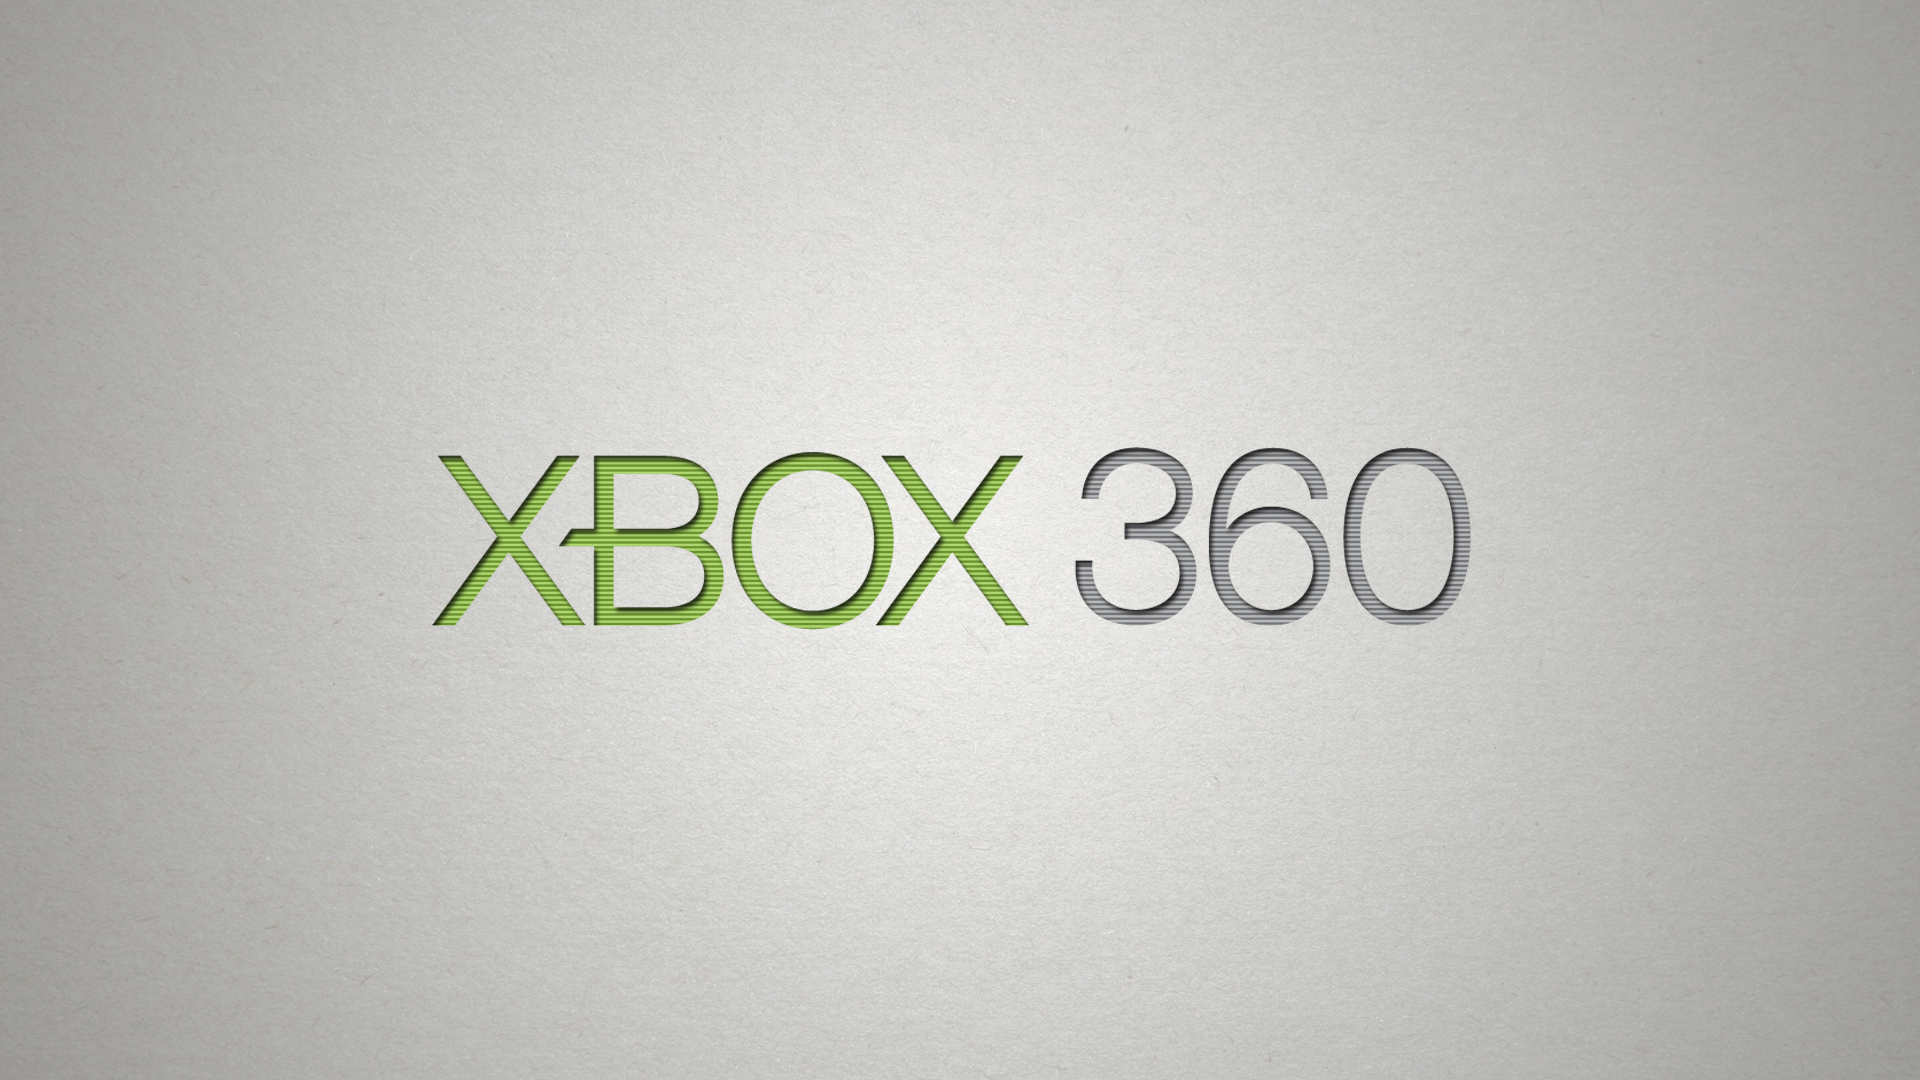 8 Xbox 360 Hd Wallpapers Background Images Wallpaper Abyss